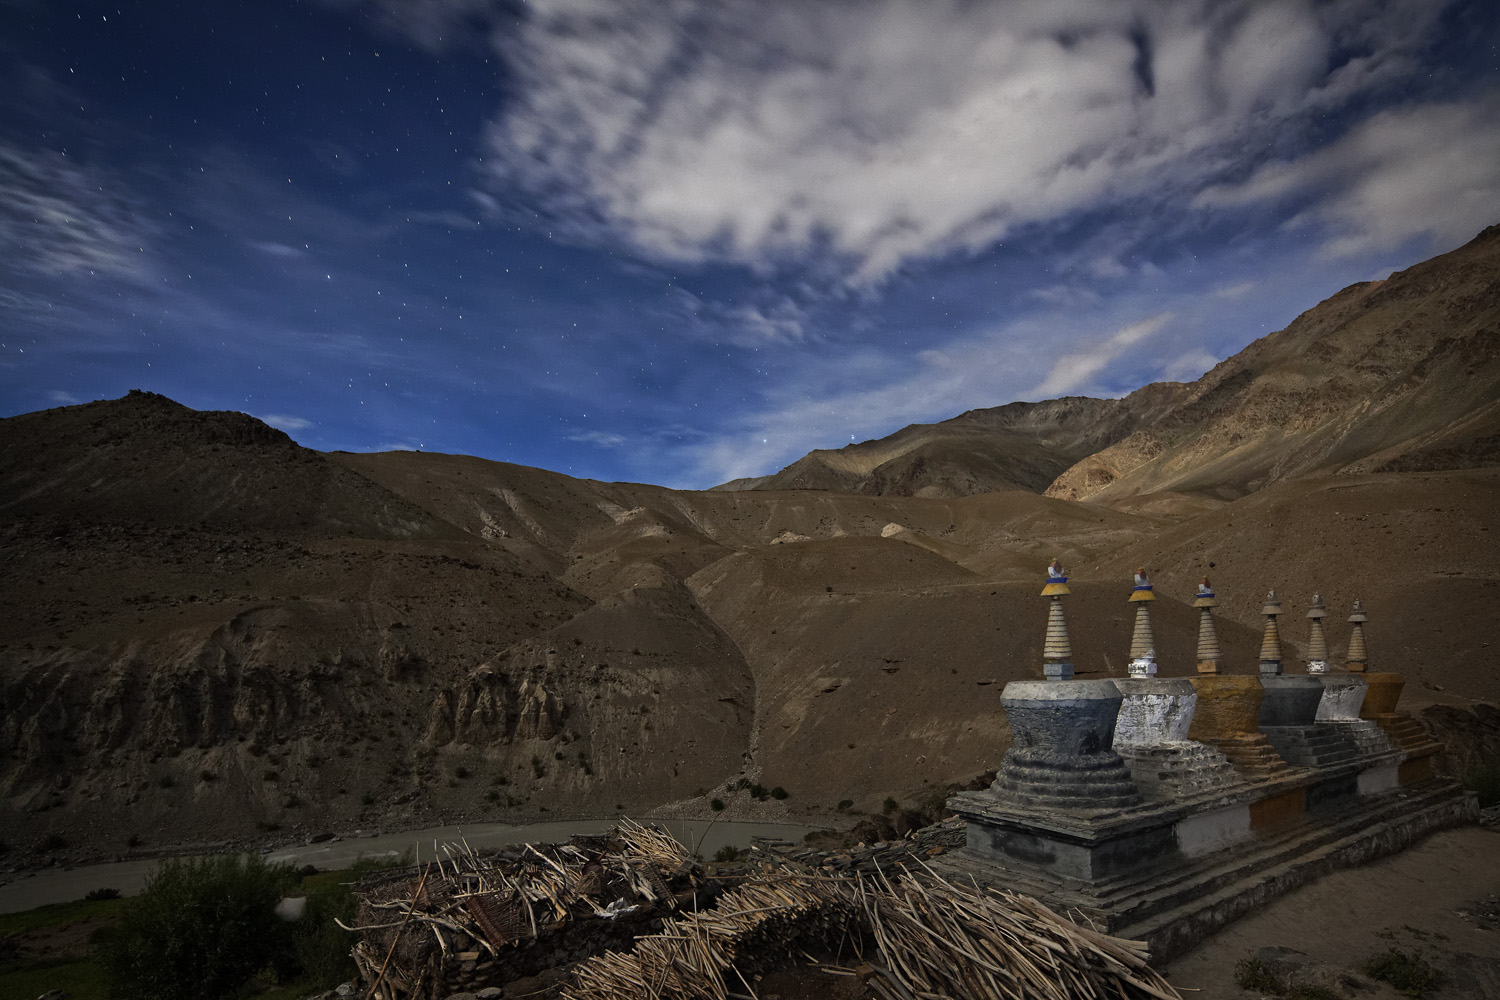 Full-moonlit night & Stupa, Purne, Zanskar, India